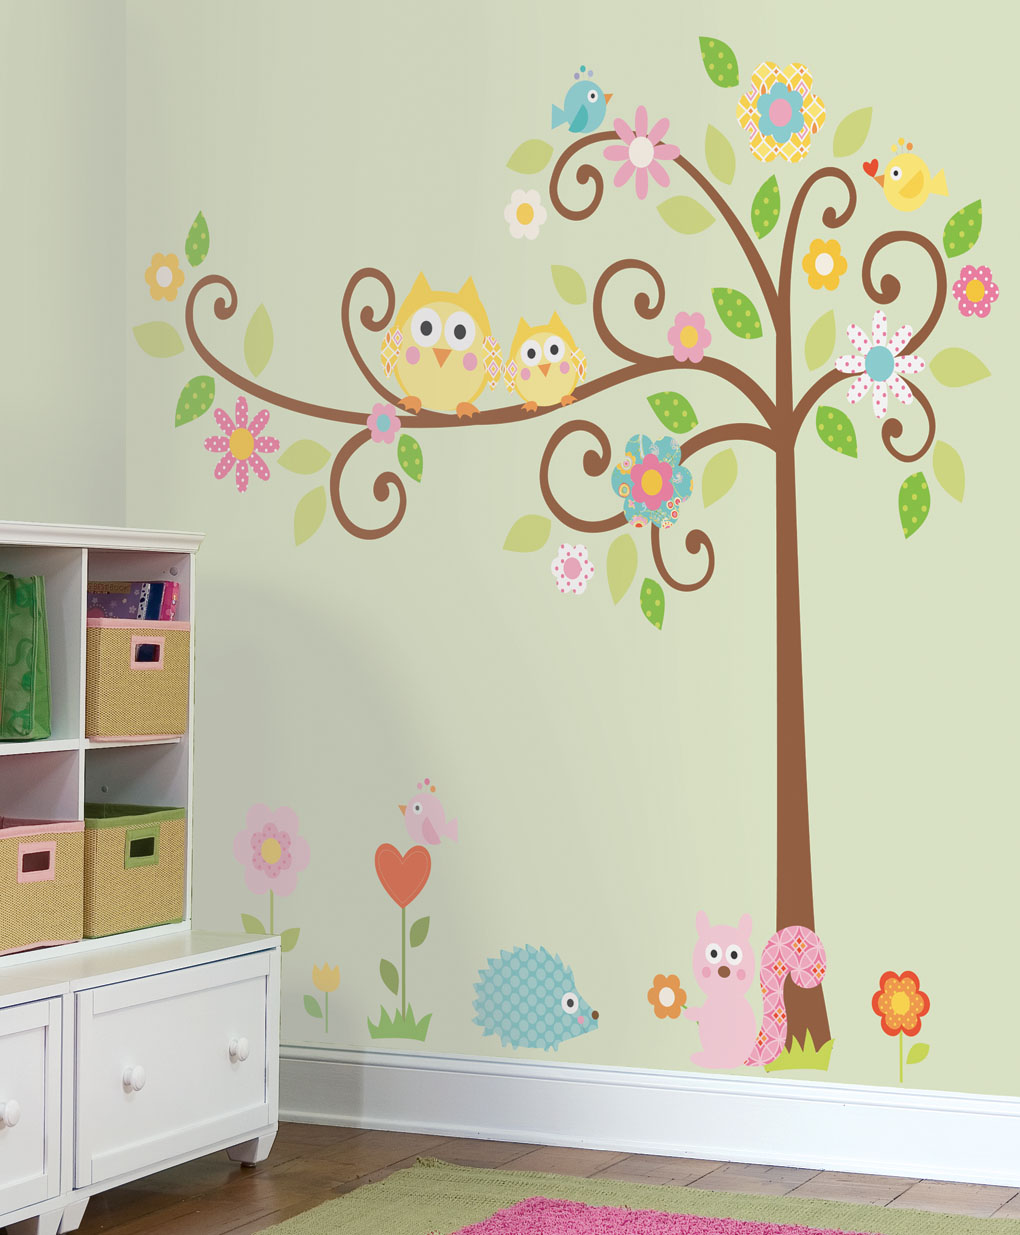 Wall Sconces For Children S Room : Wall Decals Kids Art Wall Decor